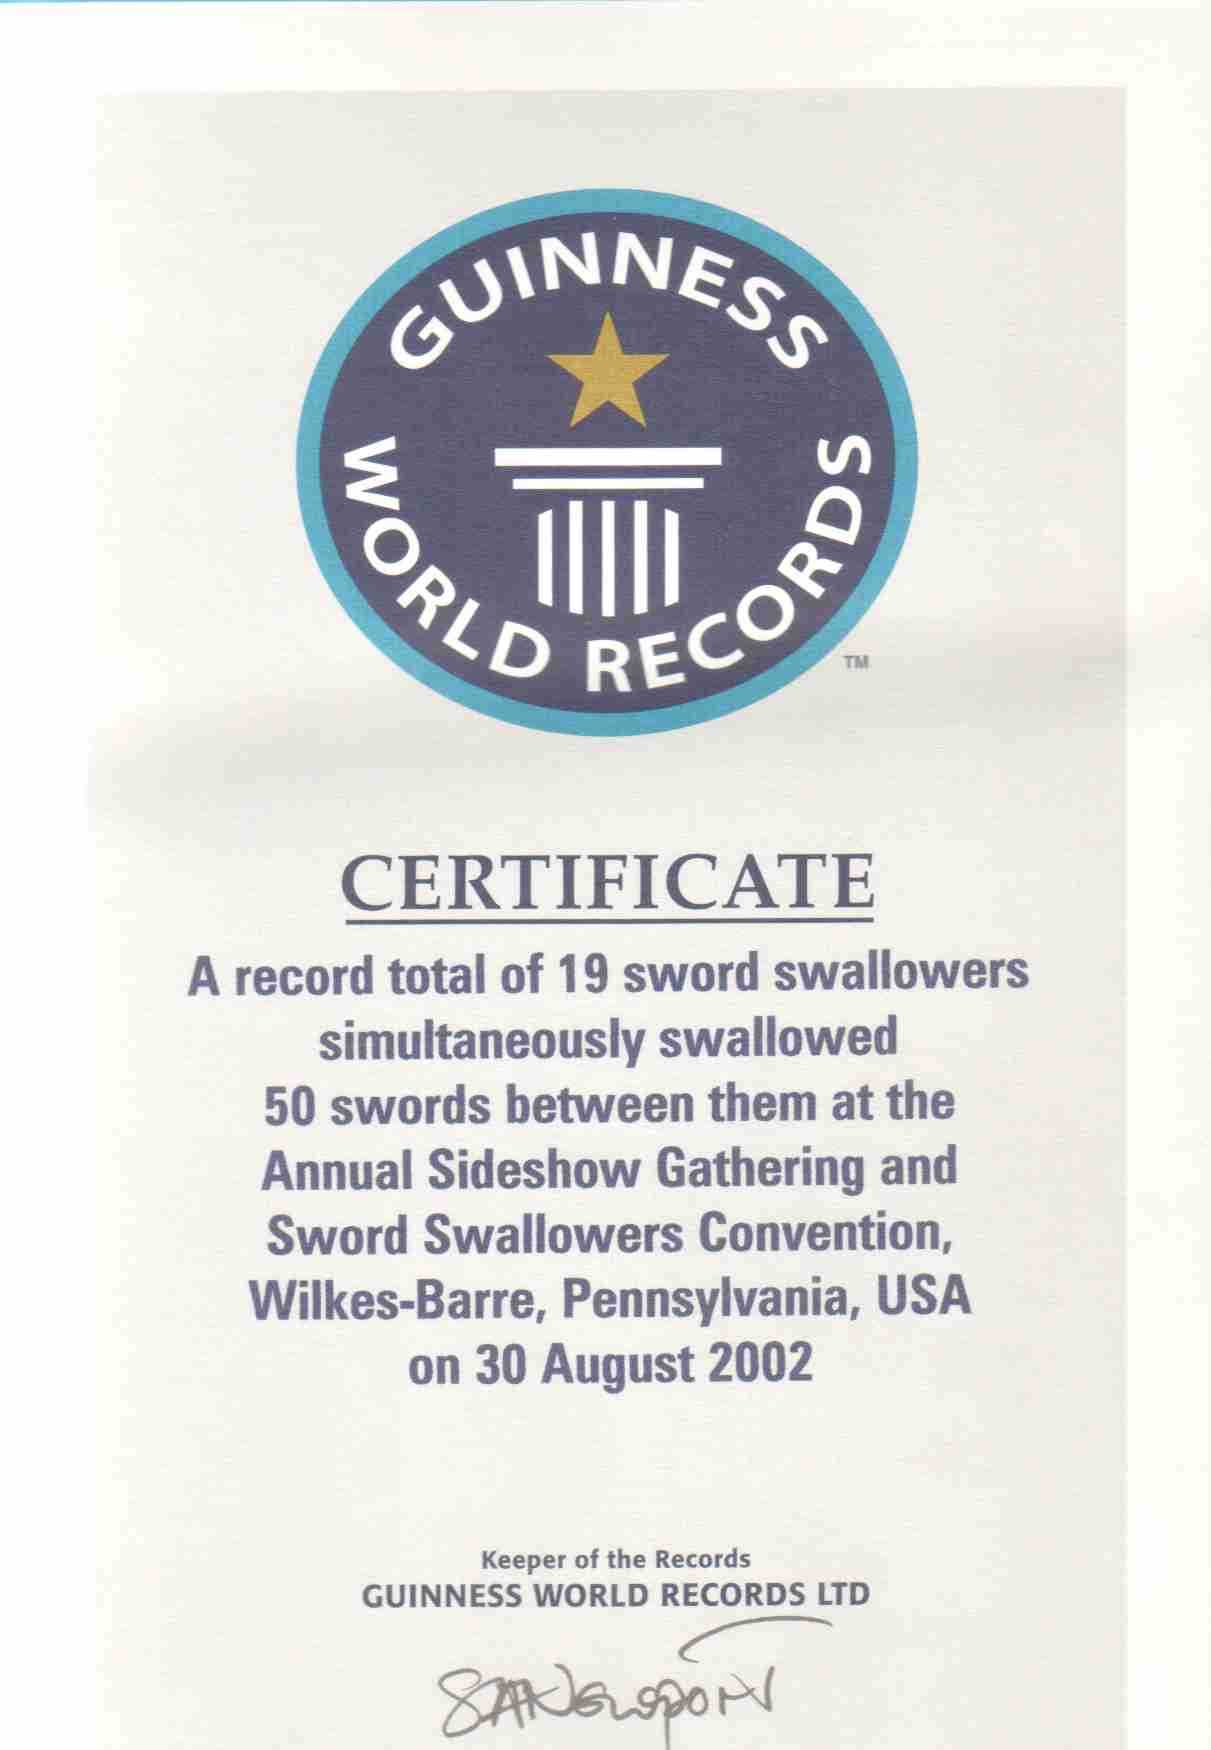 Sword Swallowers Association Intl Ssai Sword Swallowing With Regard To Guinness World Record Certificate Template